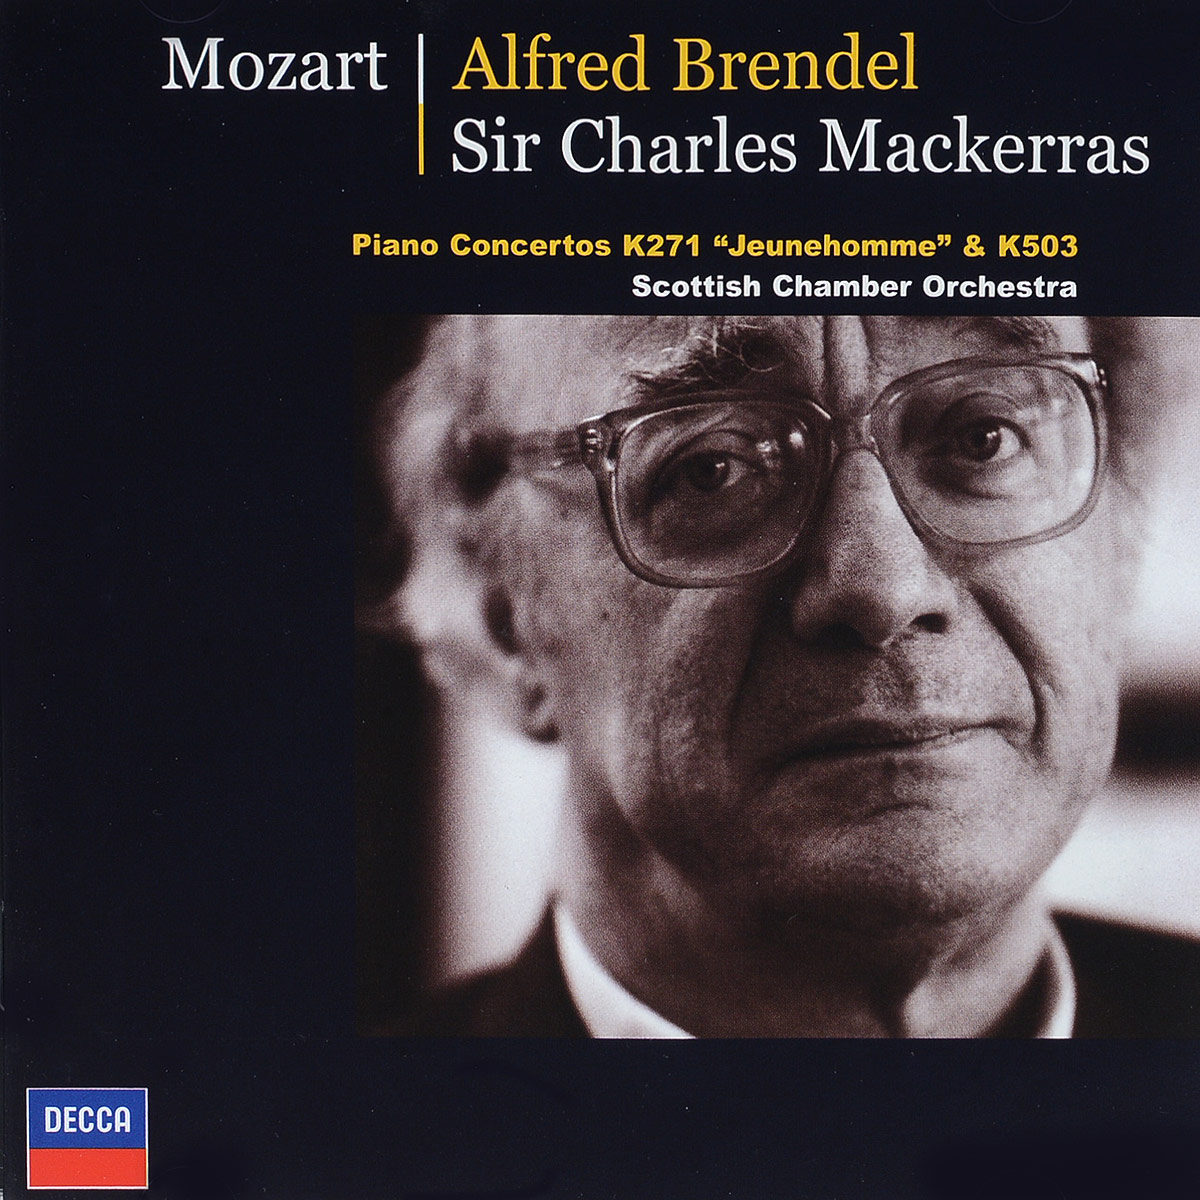 Alfred Brendel. Mozart: Piano Concertos K.271 Jeunehomme & K.503 cd диск perahia murray mozart w a the piano concertos 12 cd